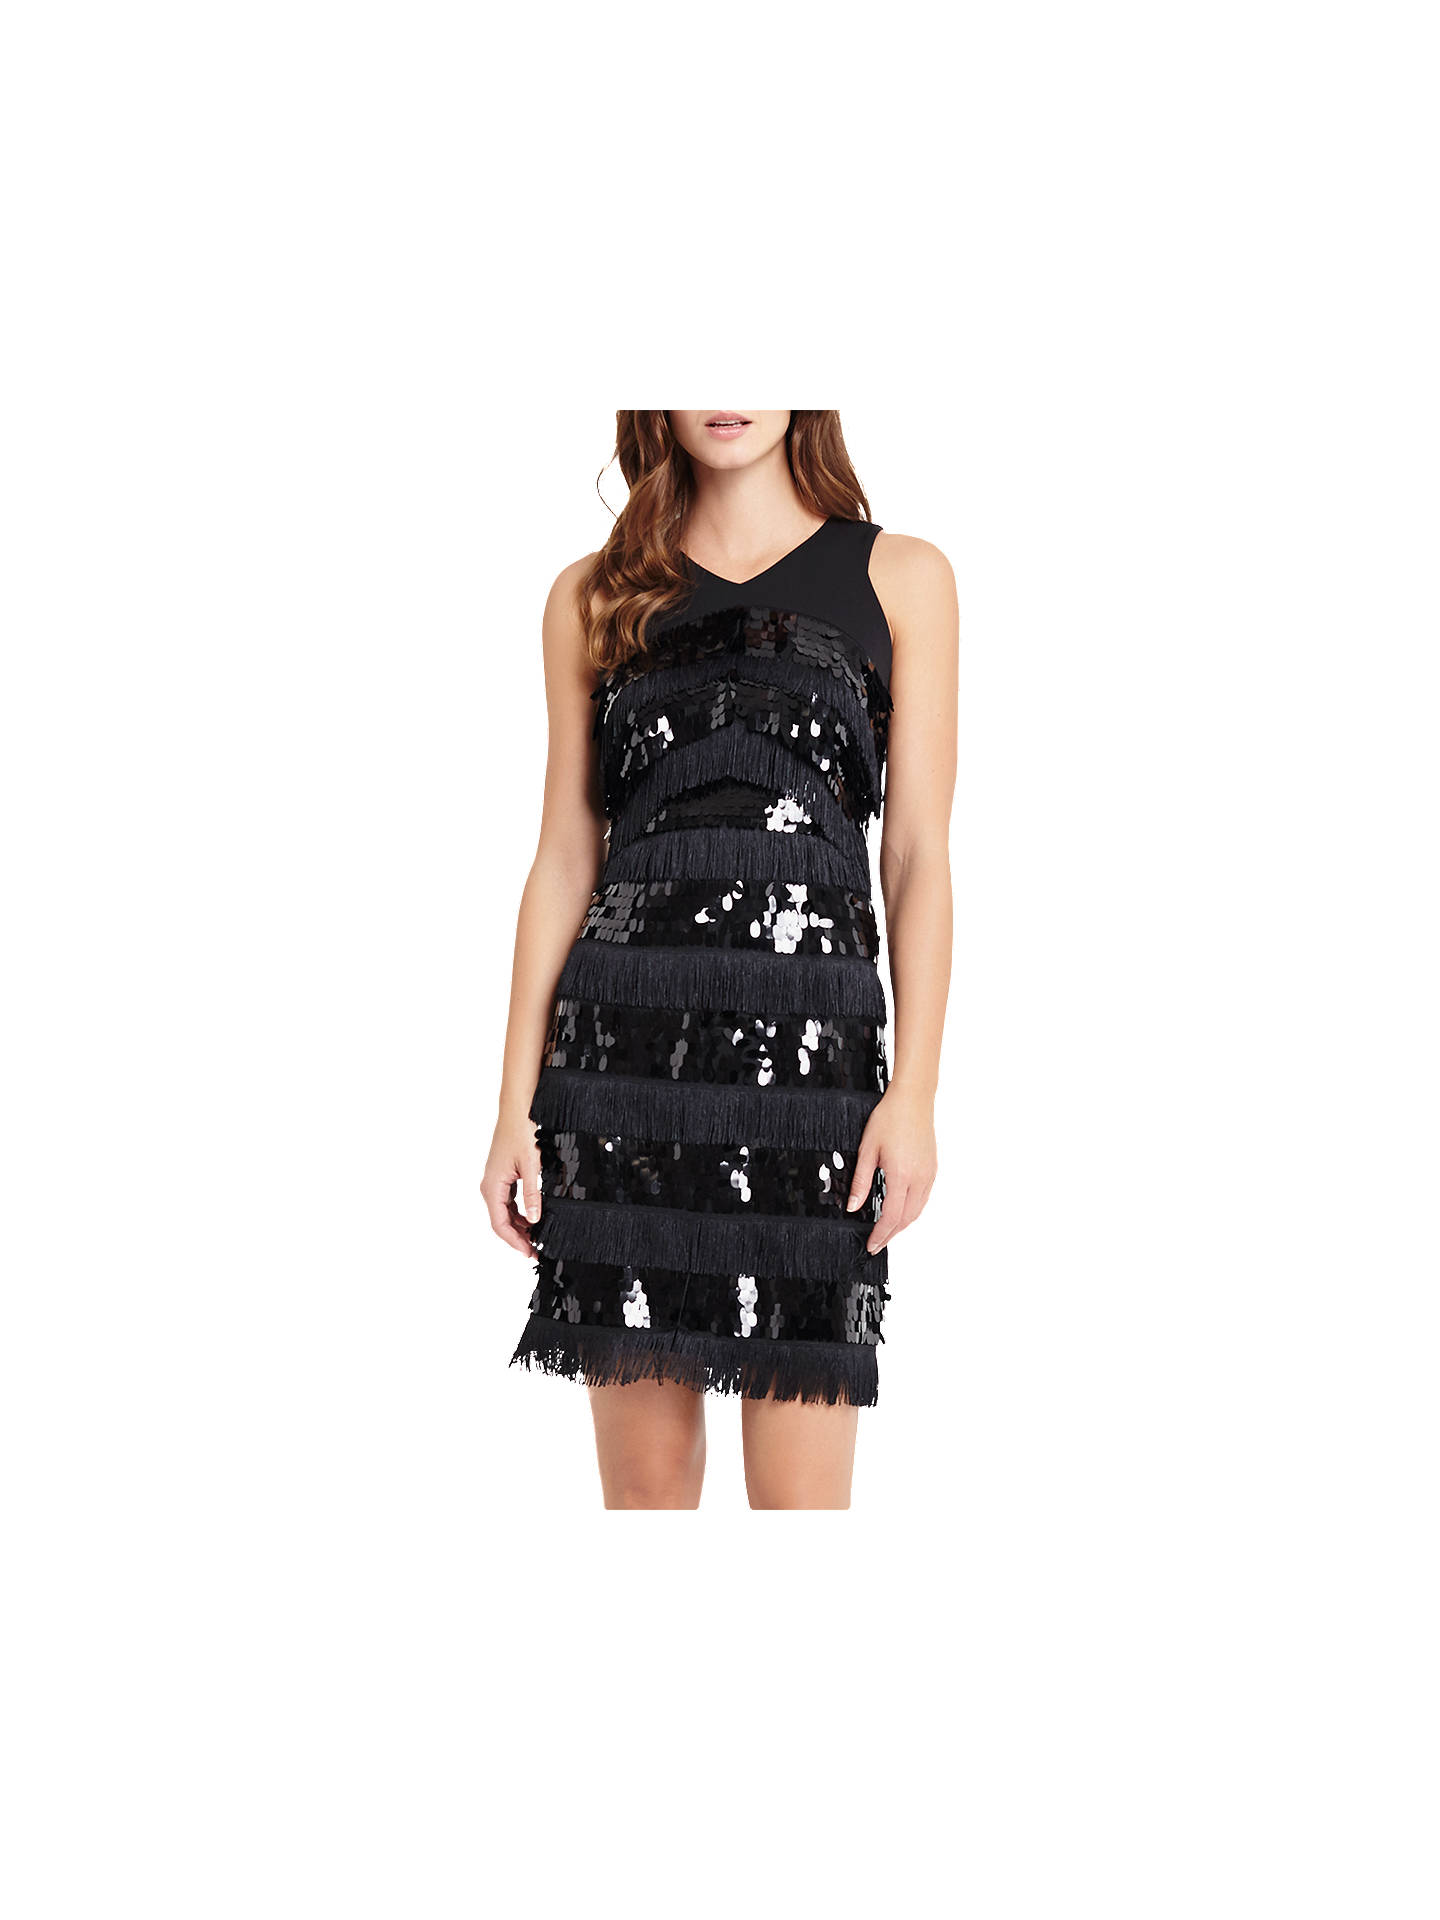 727aadb2 Buy Phase Eight Becca May Sequin Dress, Black, 6 Online at johnlewis.com ...